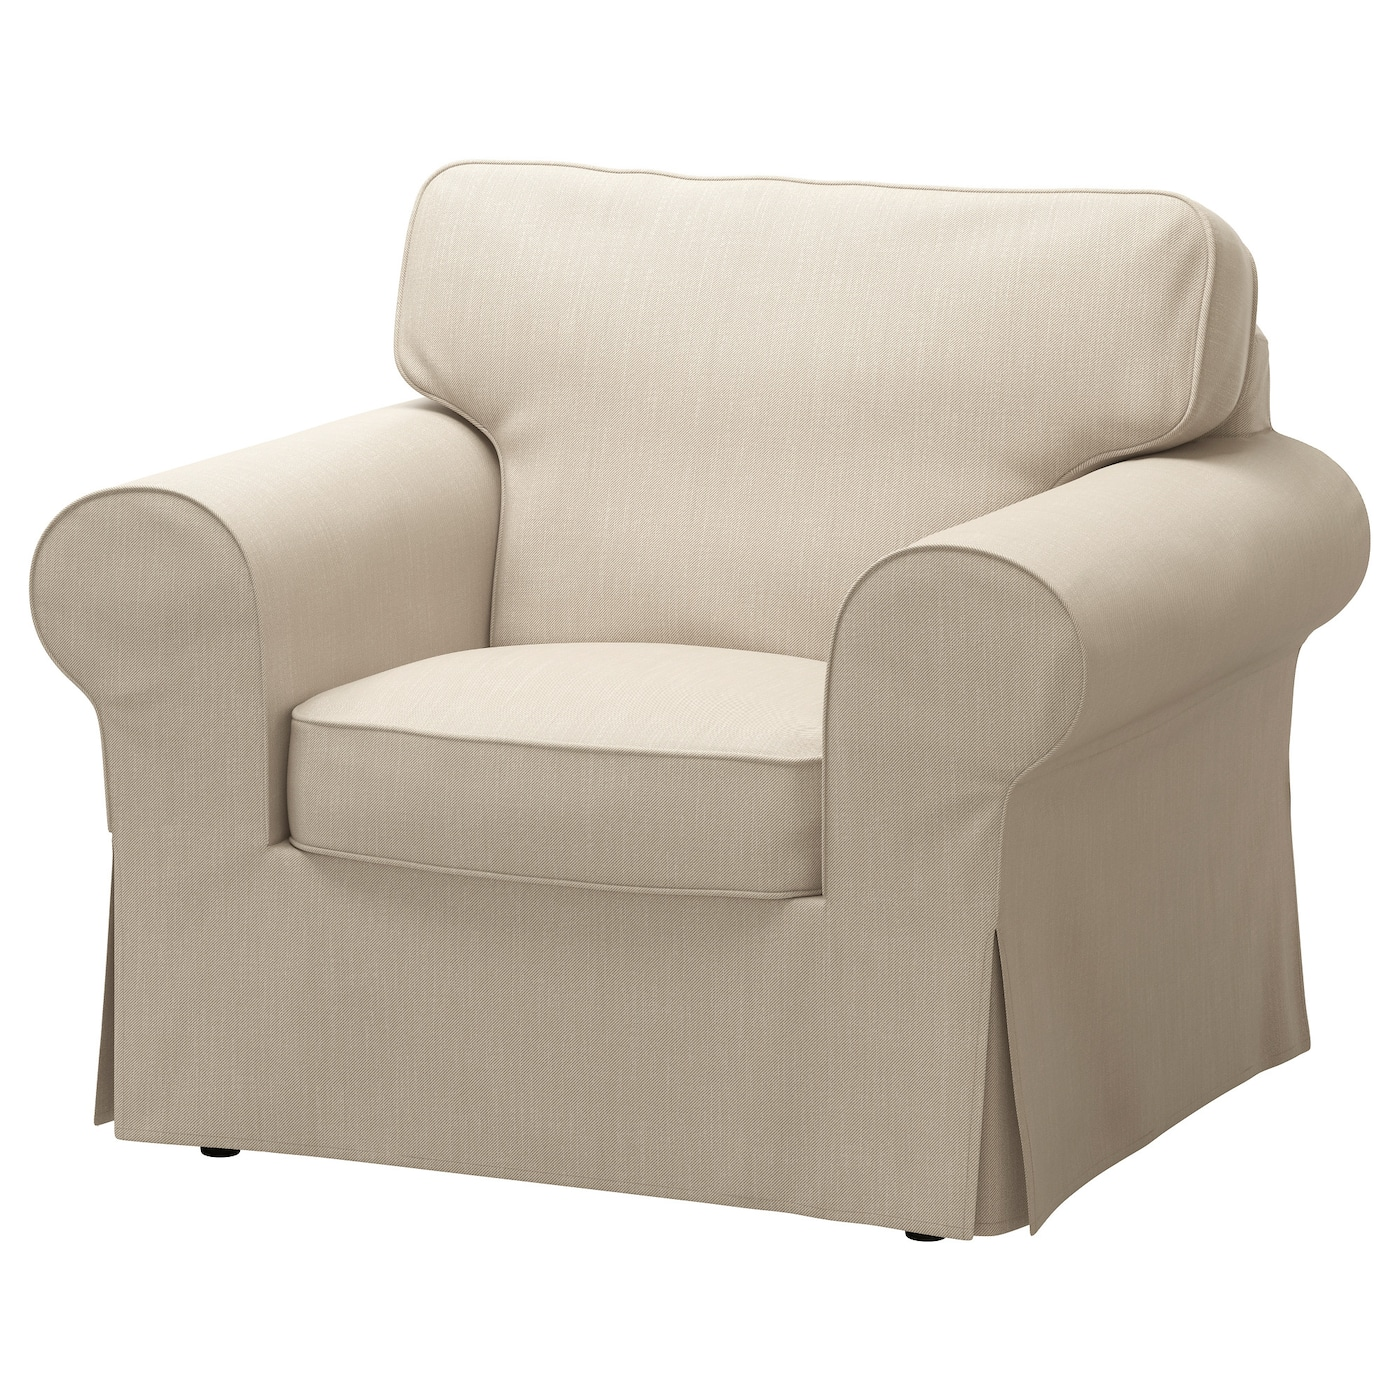 Ikea Rp Armchair The Cover Is Easy To Keep Clean As It Removable And Can